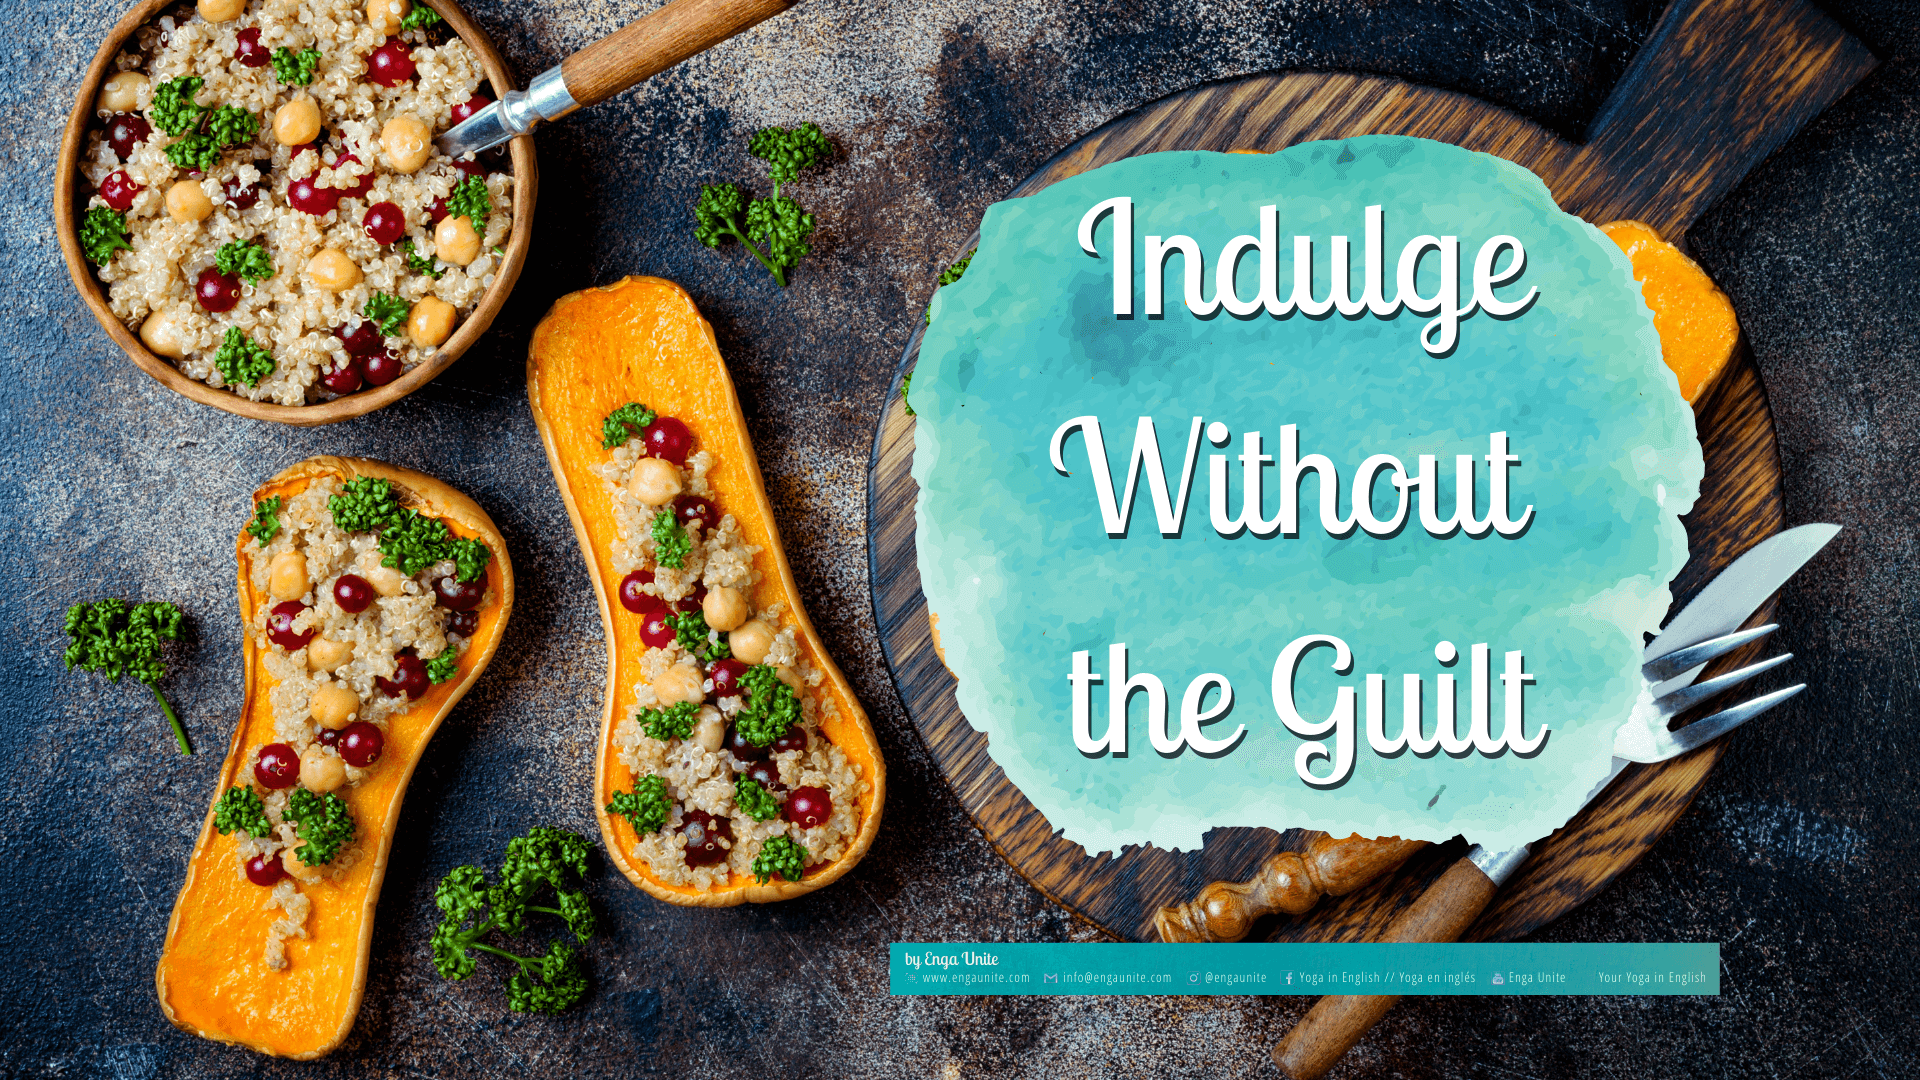 Indulge Without the Guilt